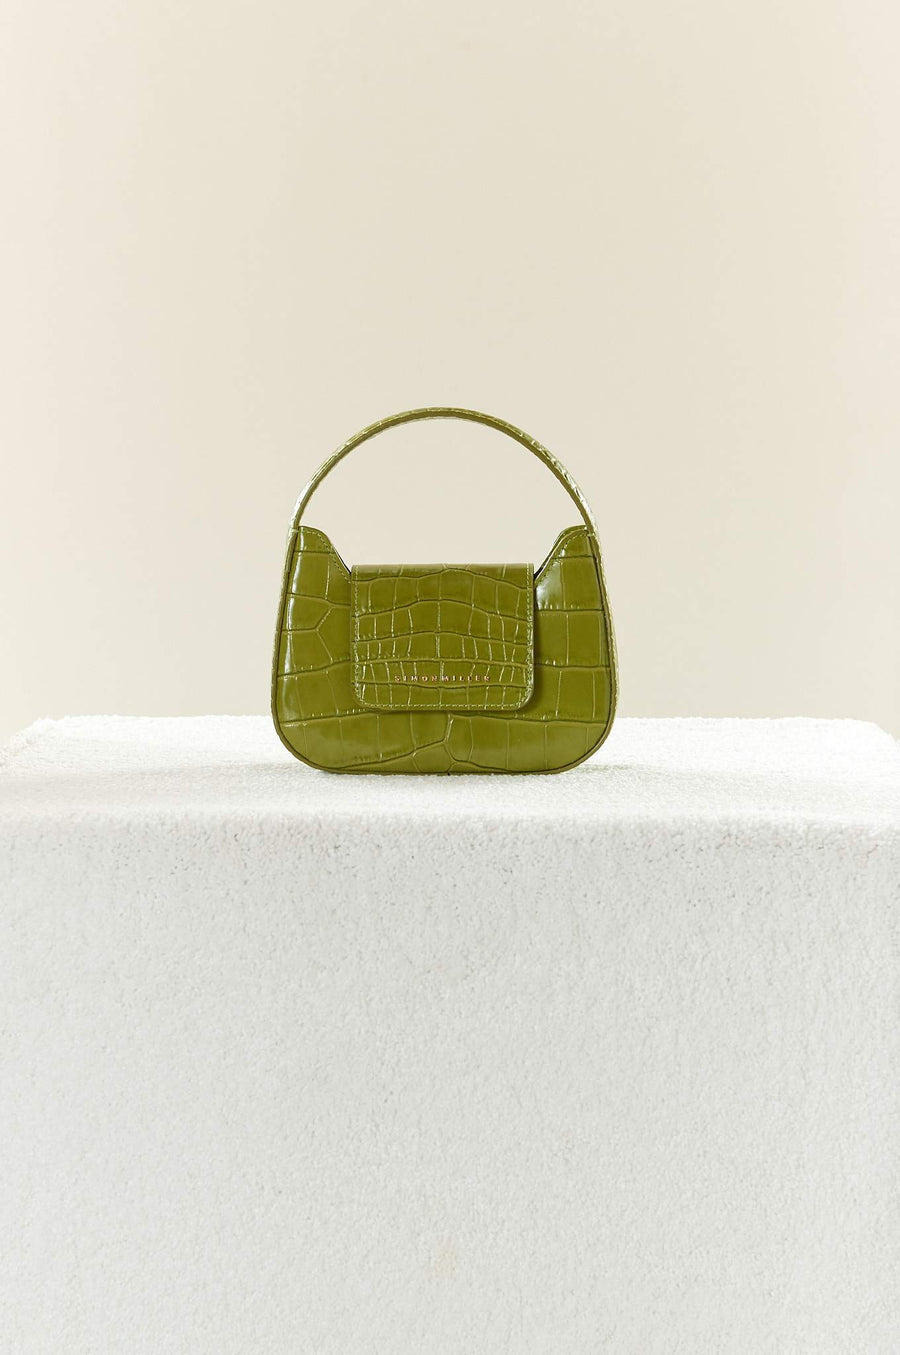 Mini Retro Bag in Chartreuse